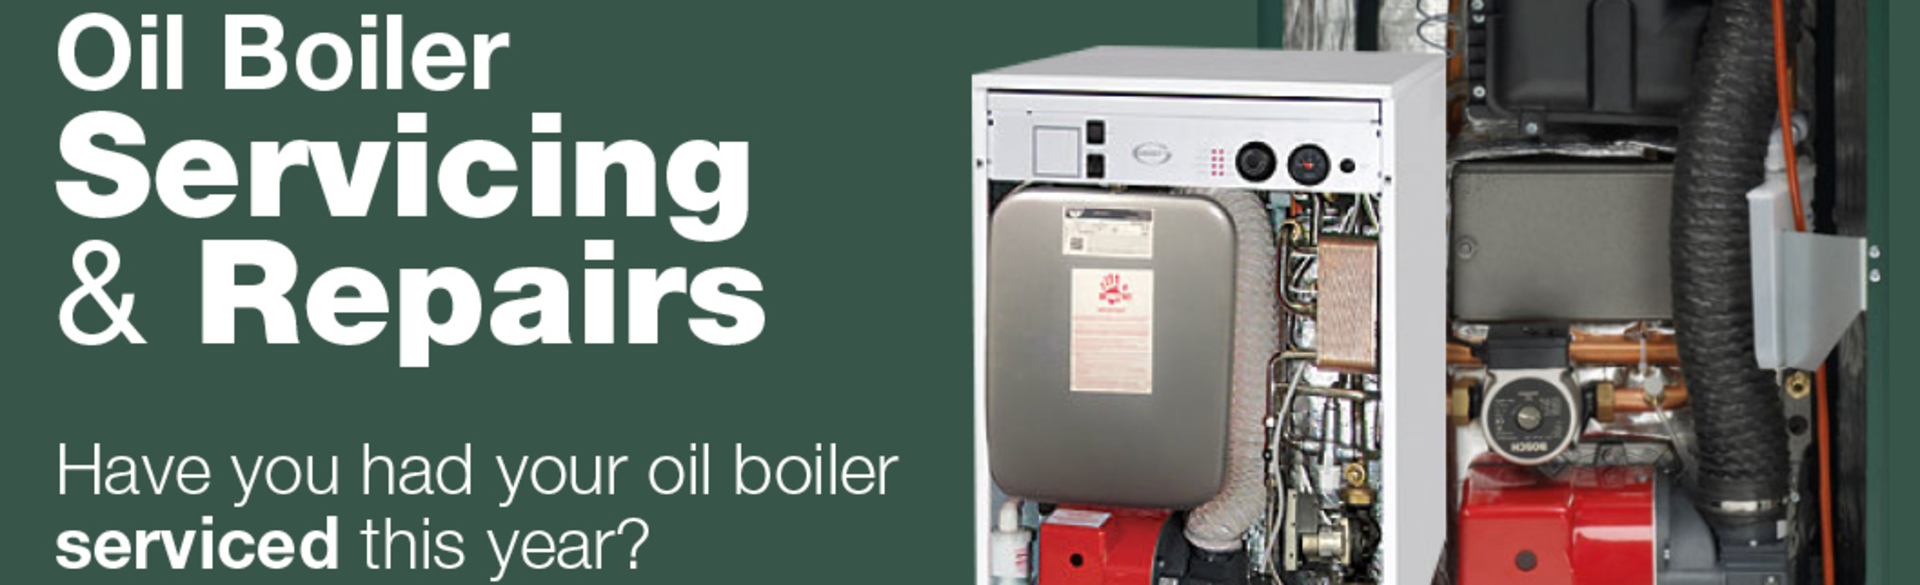 Oil Man Near Me, Oil Engineers Dorset, Oil Boiler Repair Dorset, Oil Boiler Servicing Dorset, Oil Engineer Dorset, Gas Man Dorset, Oil Boiler Installation Dorset, Oil Boiler Replacement Dorset, Oil, Oil Boiler Service, Oil Boiler Breakdown, Oil Boiler Ins